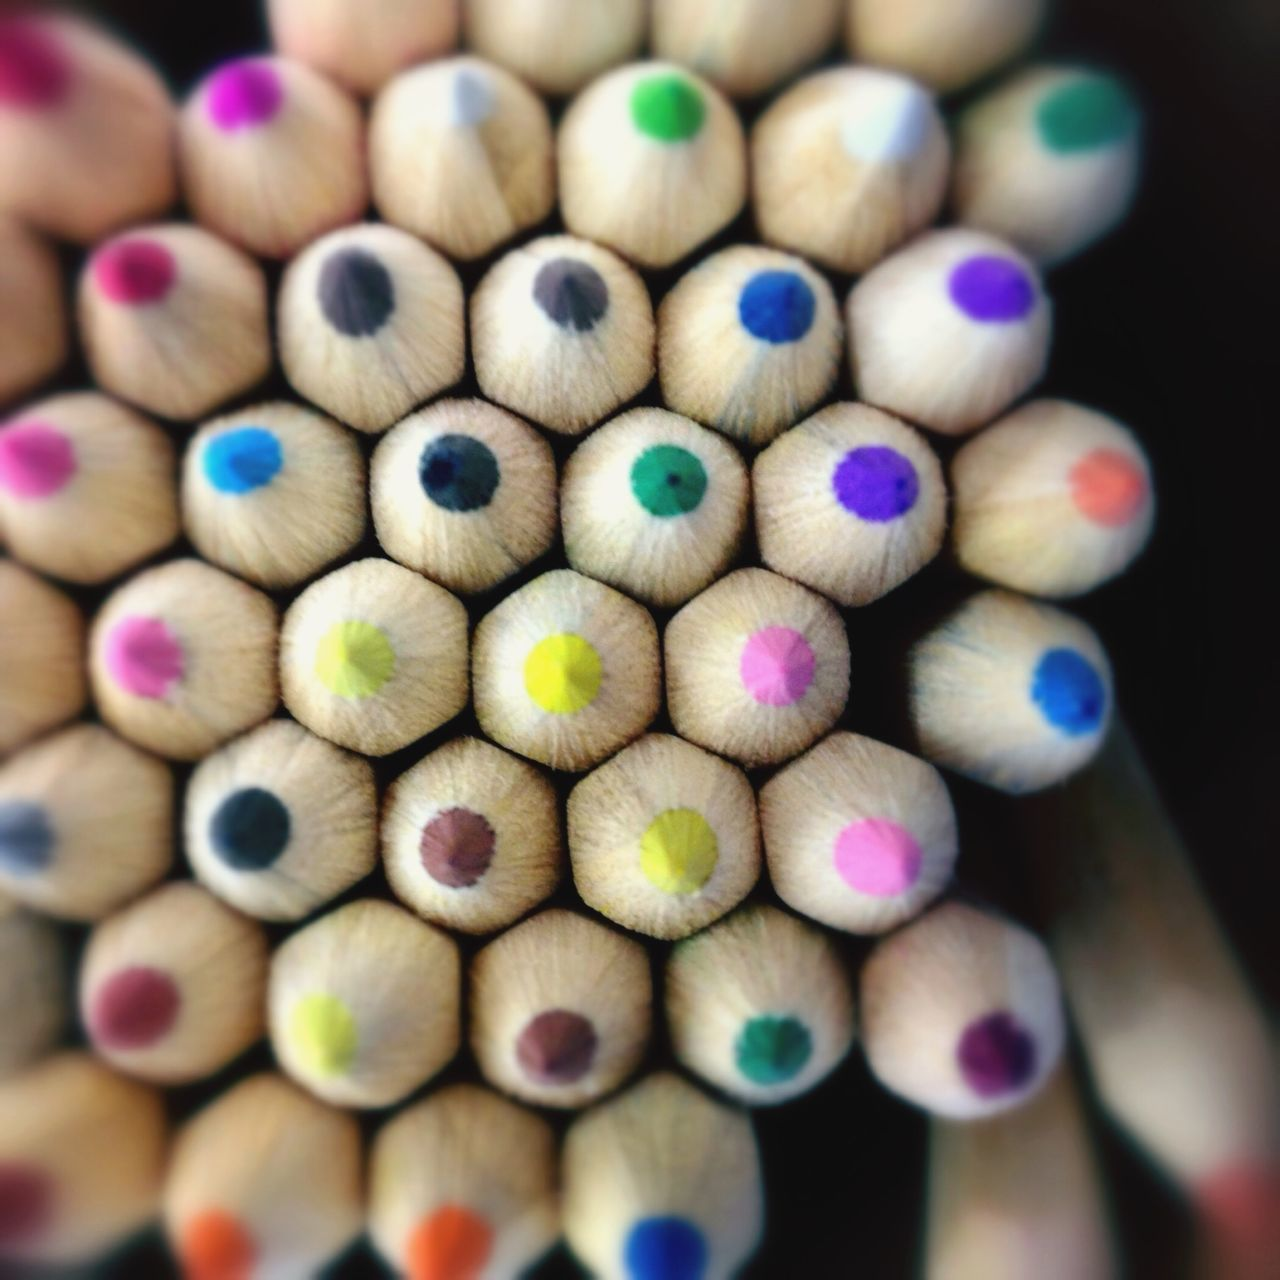 Colourful Pencils Multi-coloured Square School Pointed Points IPhoneography Hexagon Hexagonal